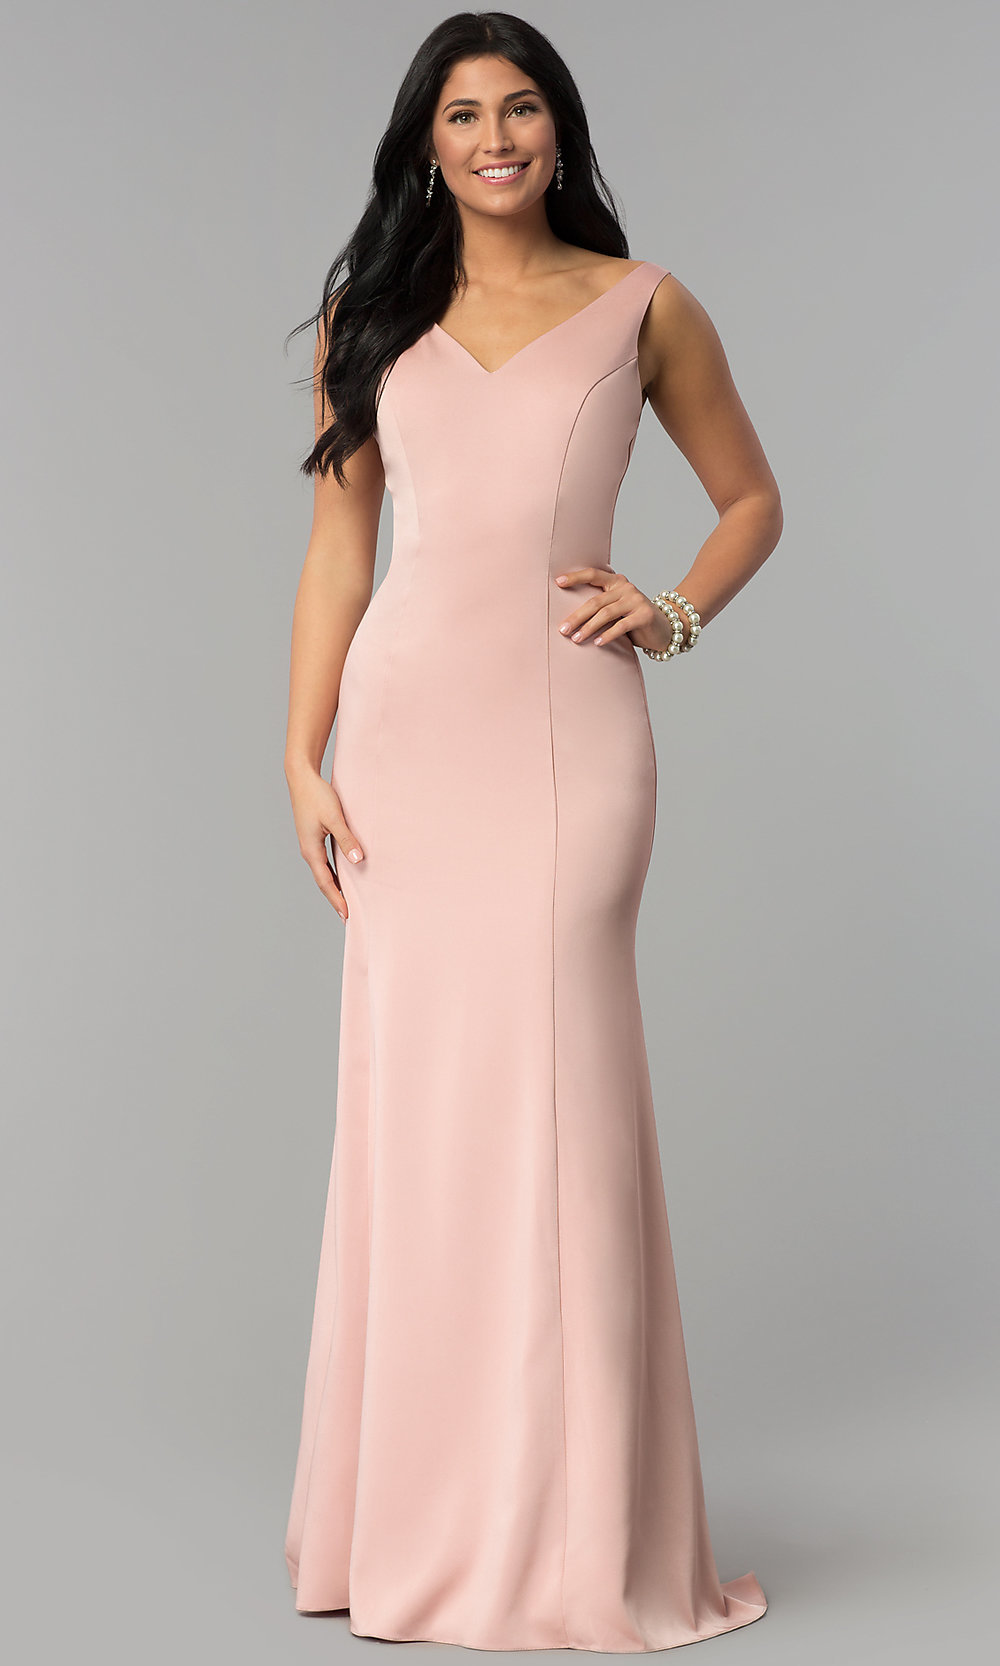 Sateen Princess-Cut Long Formal Prom Dress